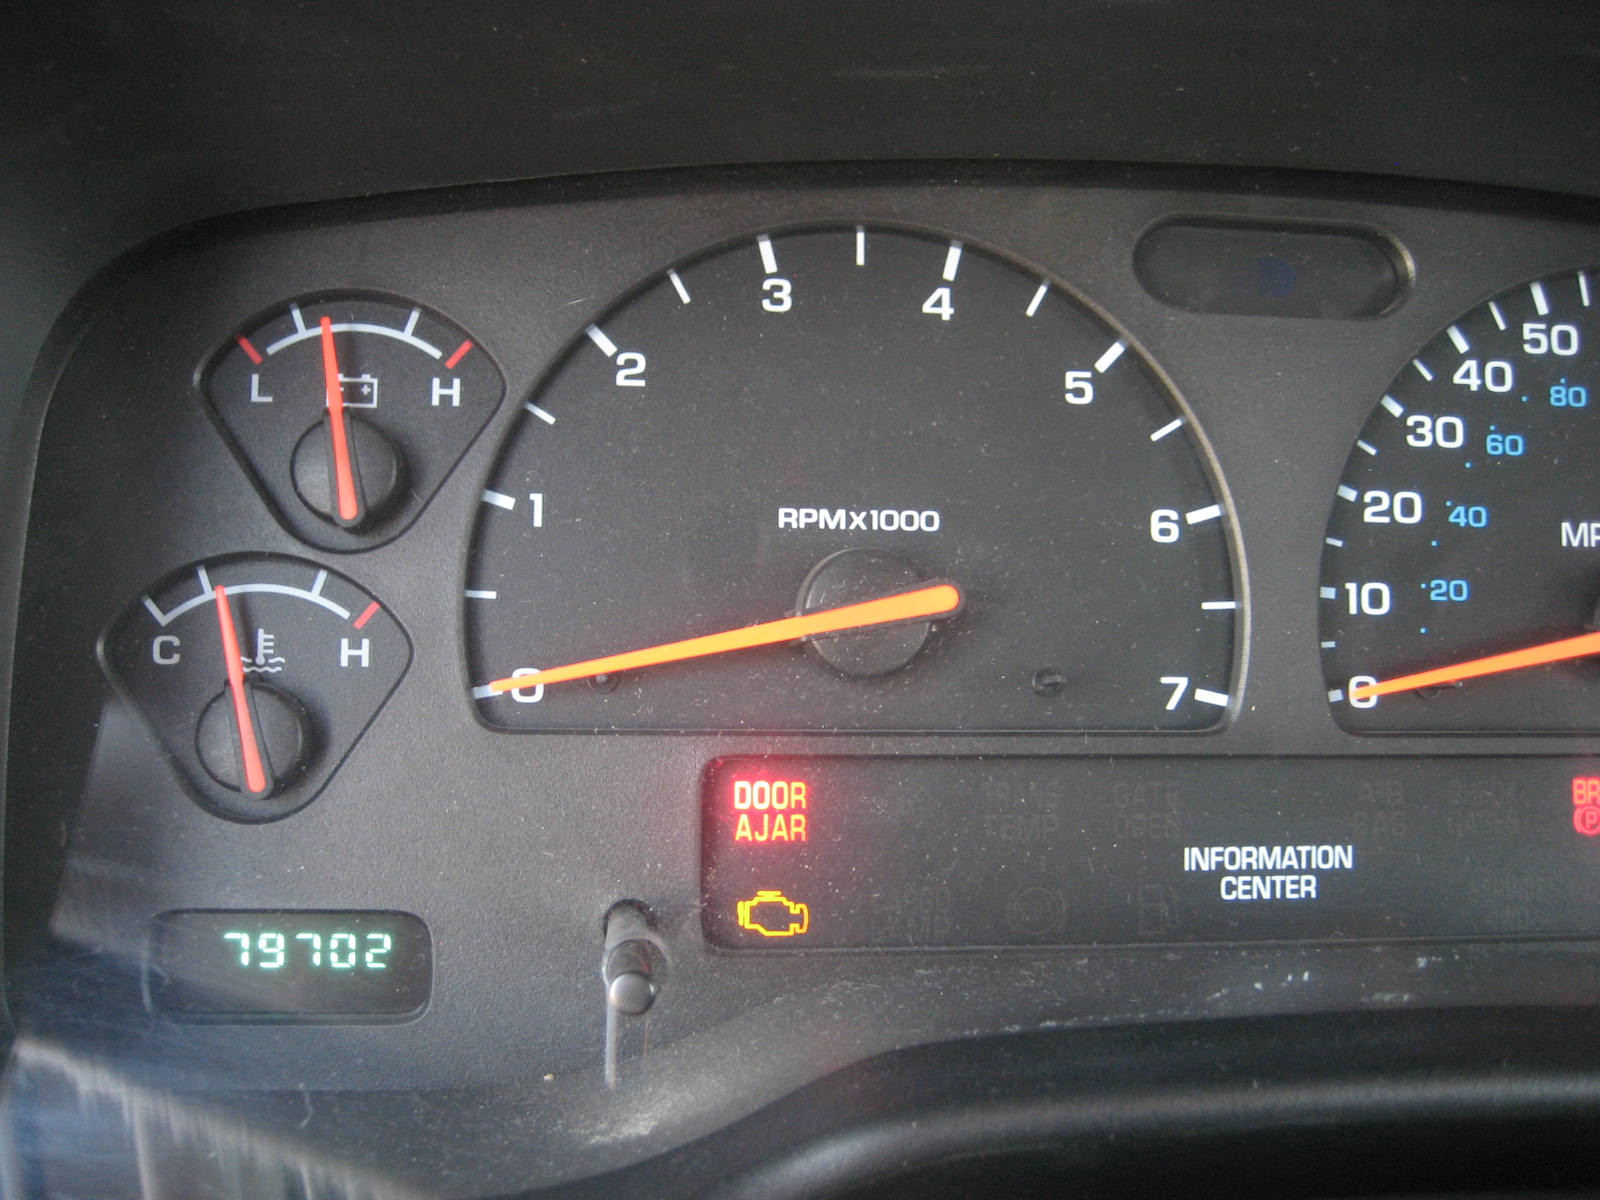 2002 Dodge Dakota - Interior Pictures - Picture of 2002 Dodge Dakota 2 ...